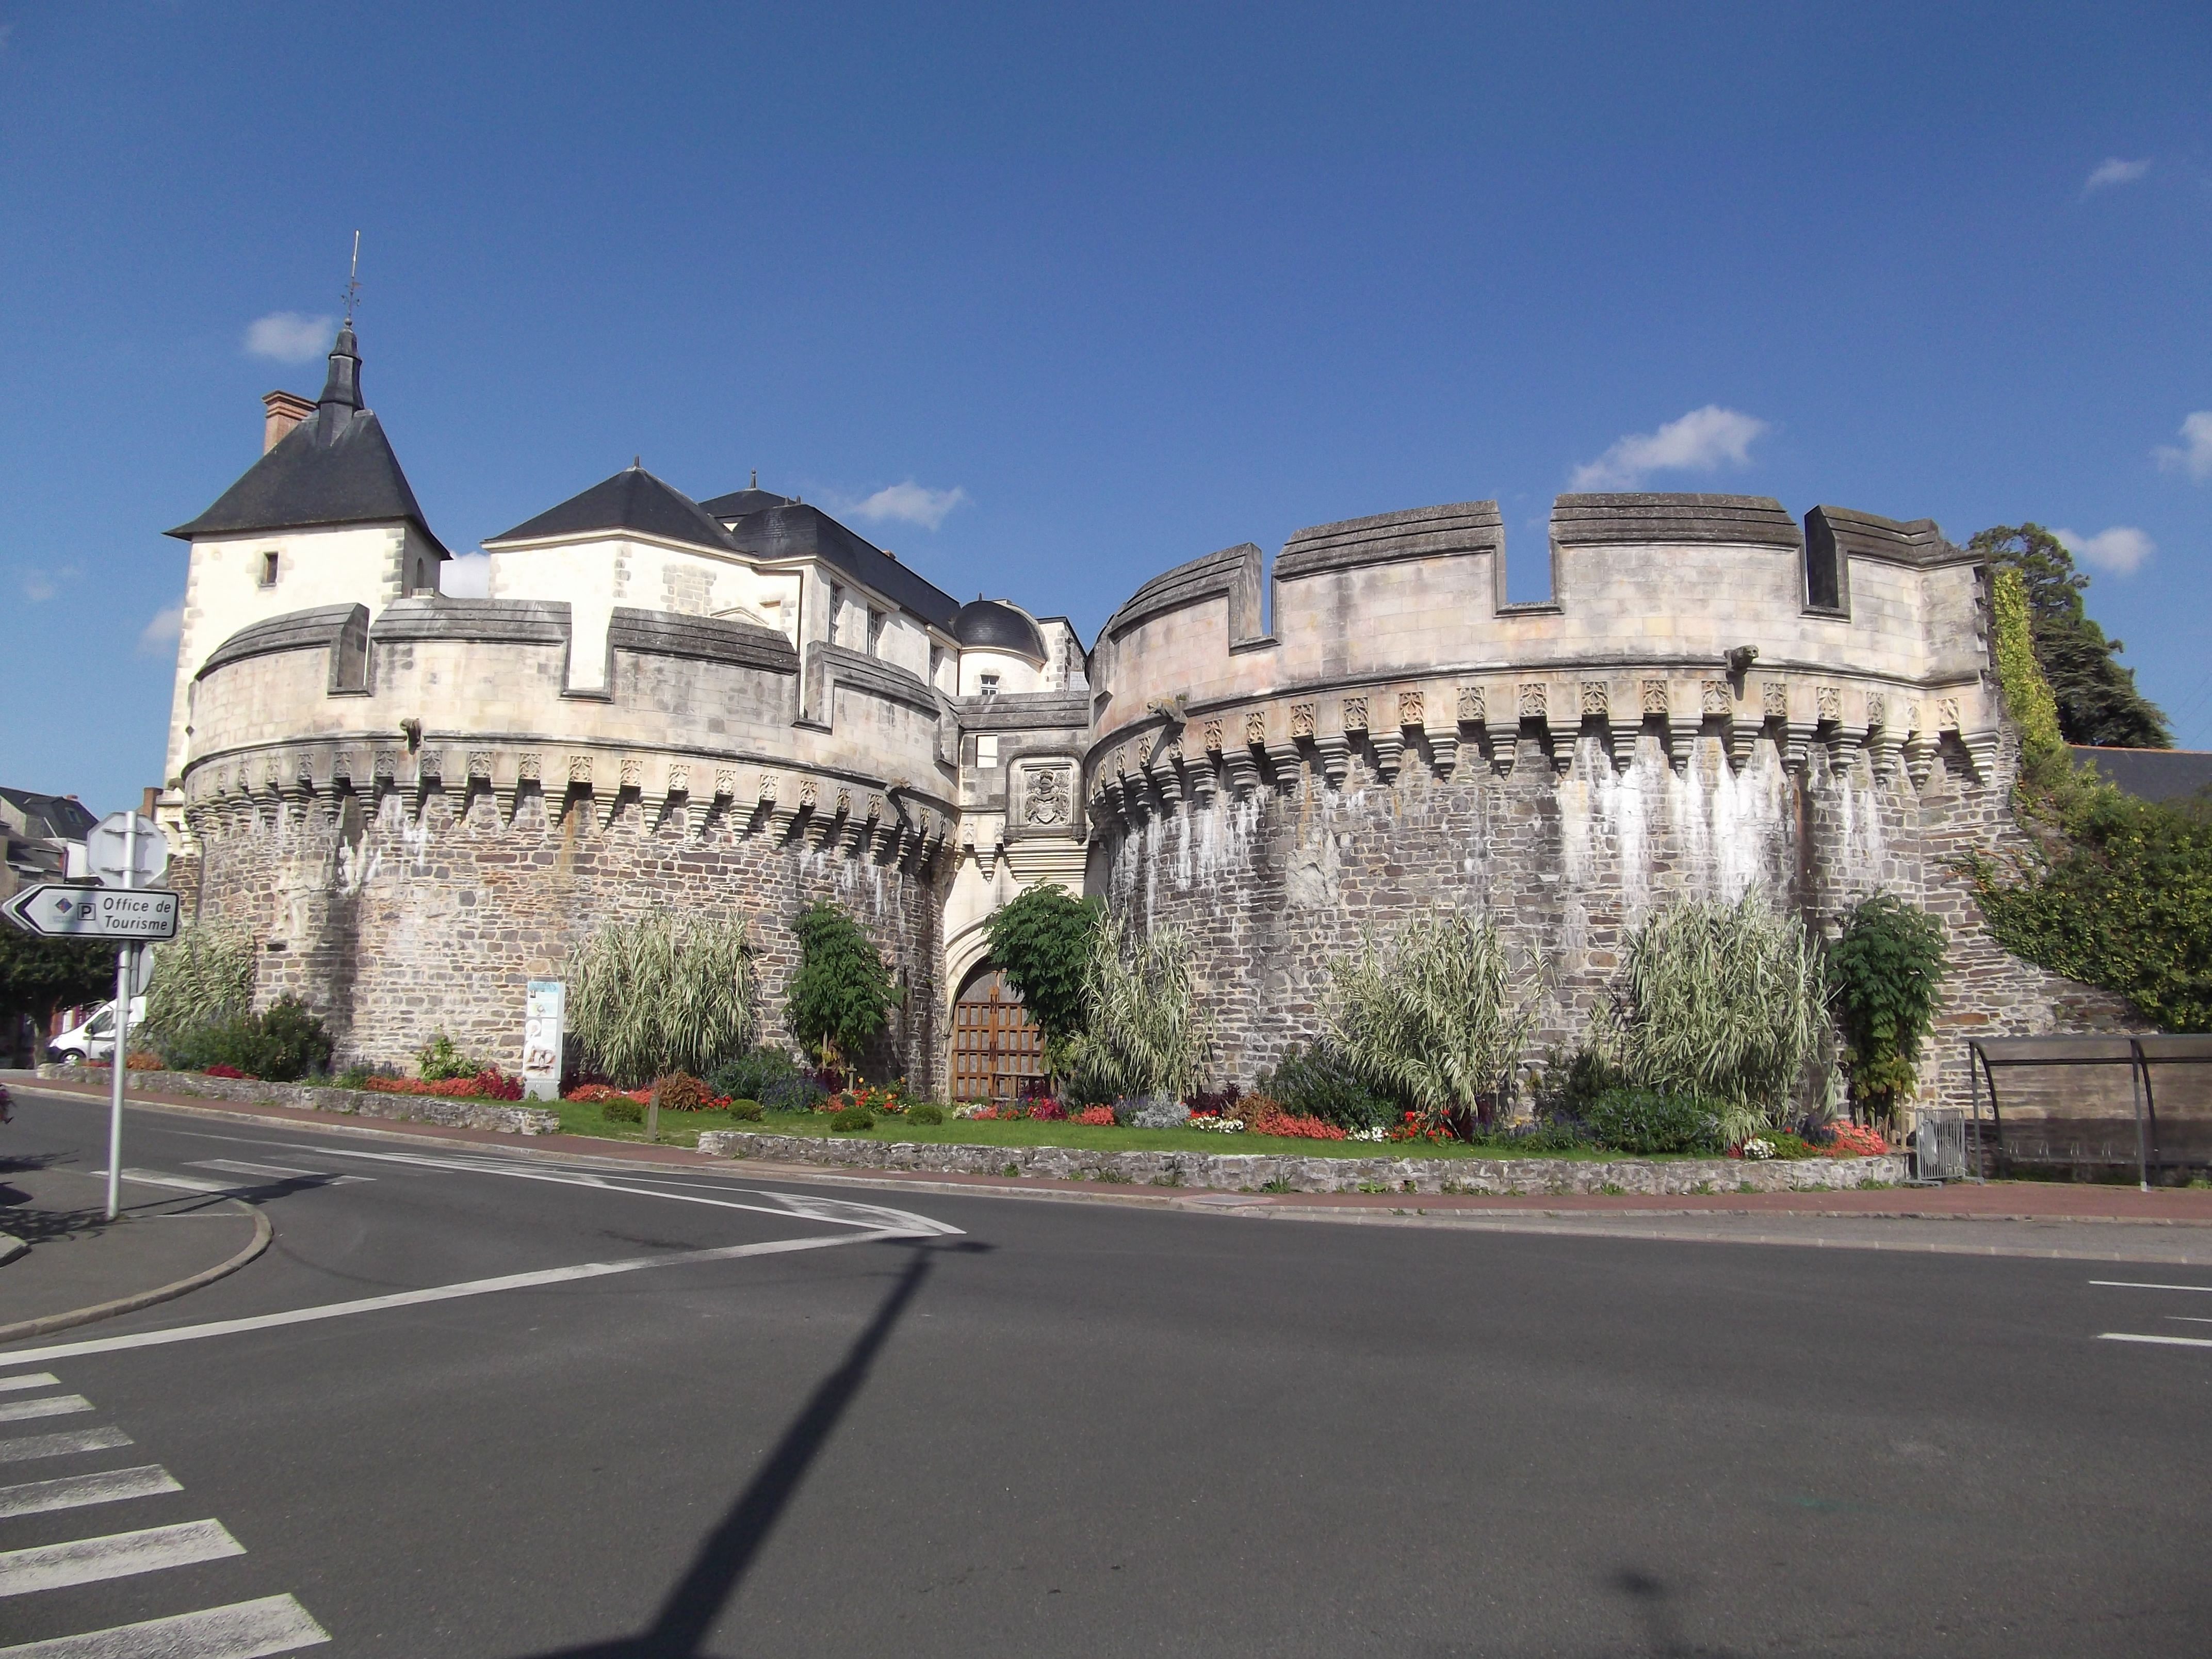 The main attraction in Ancenis is the Chateau of Ancenis.